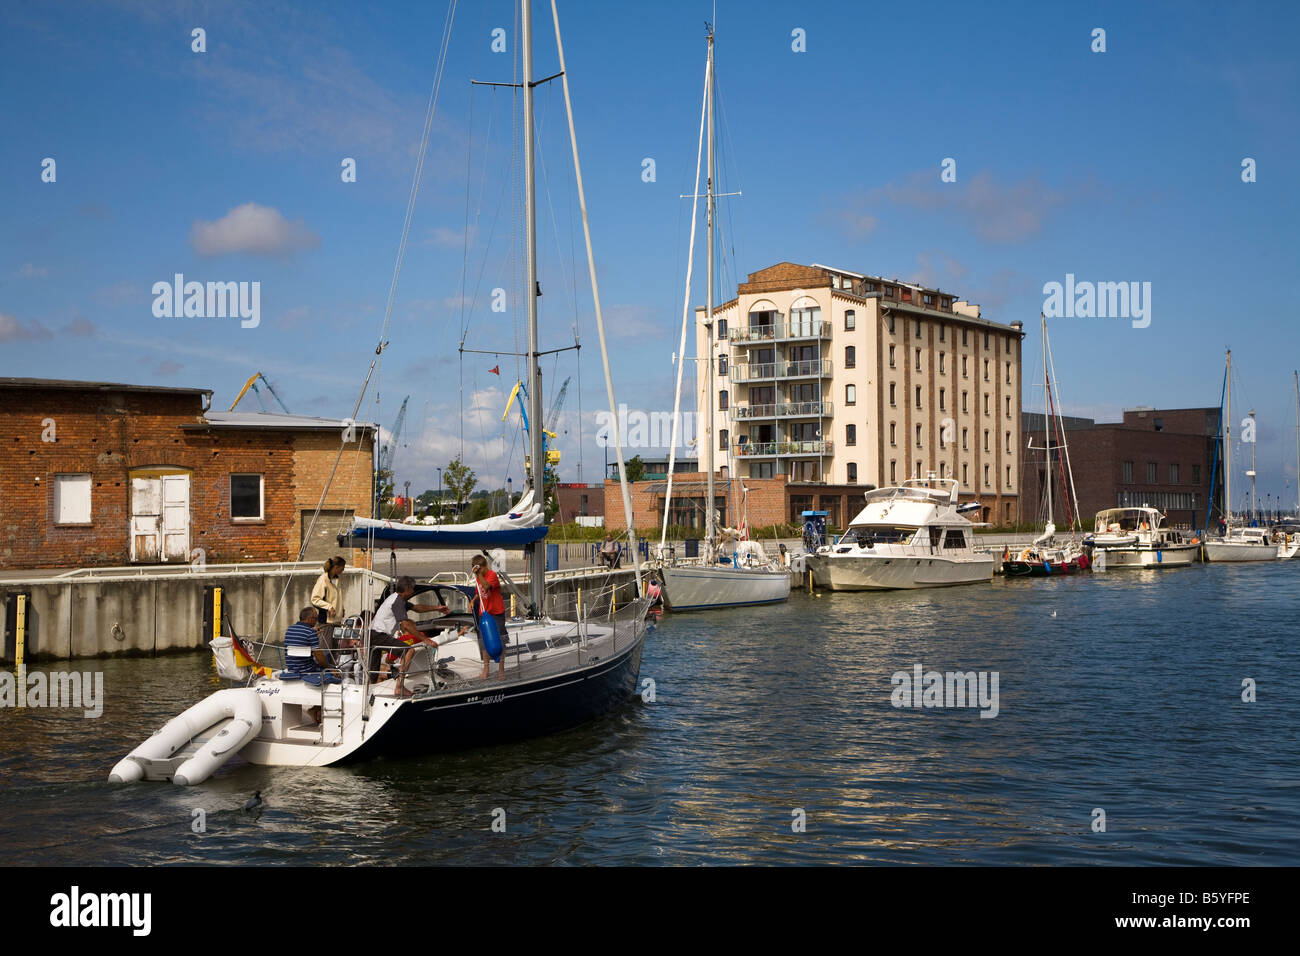 Yacht in harbour Wismar Germany - Stock Image